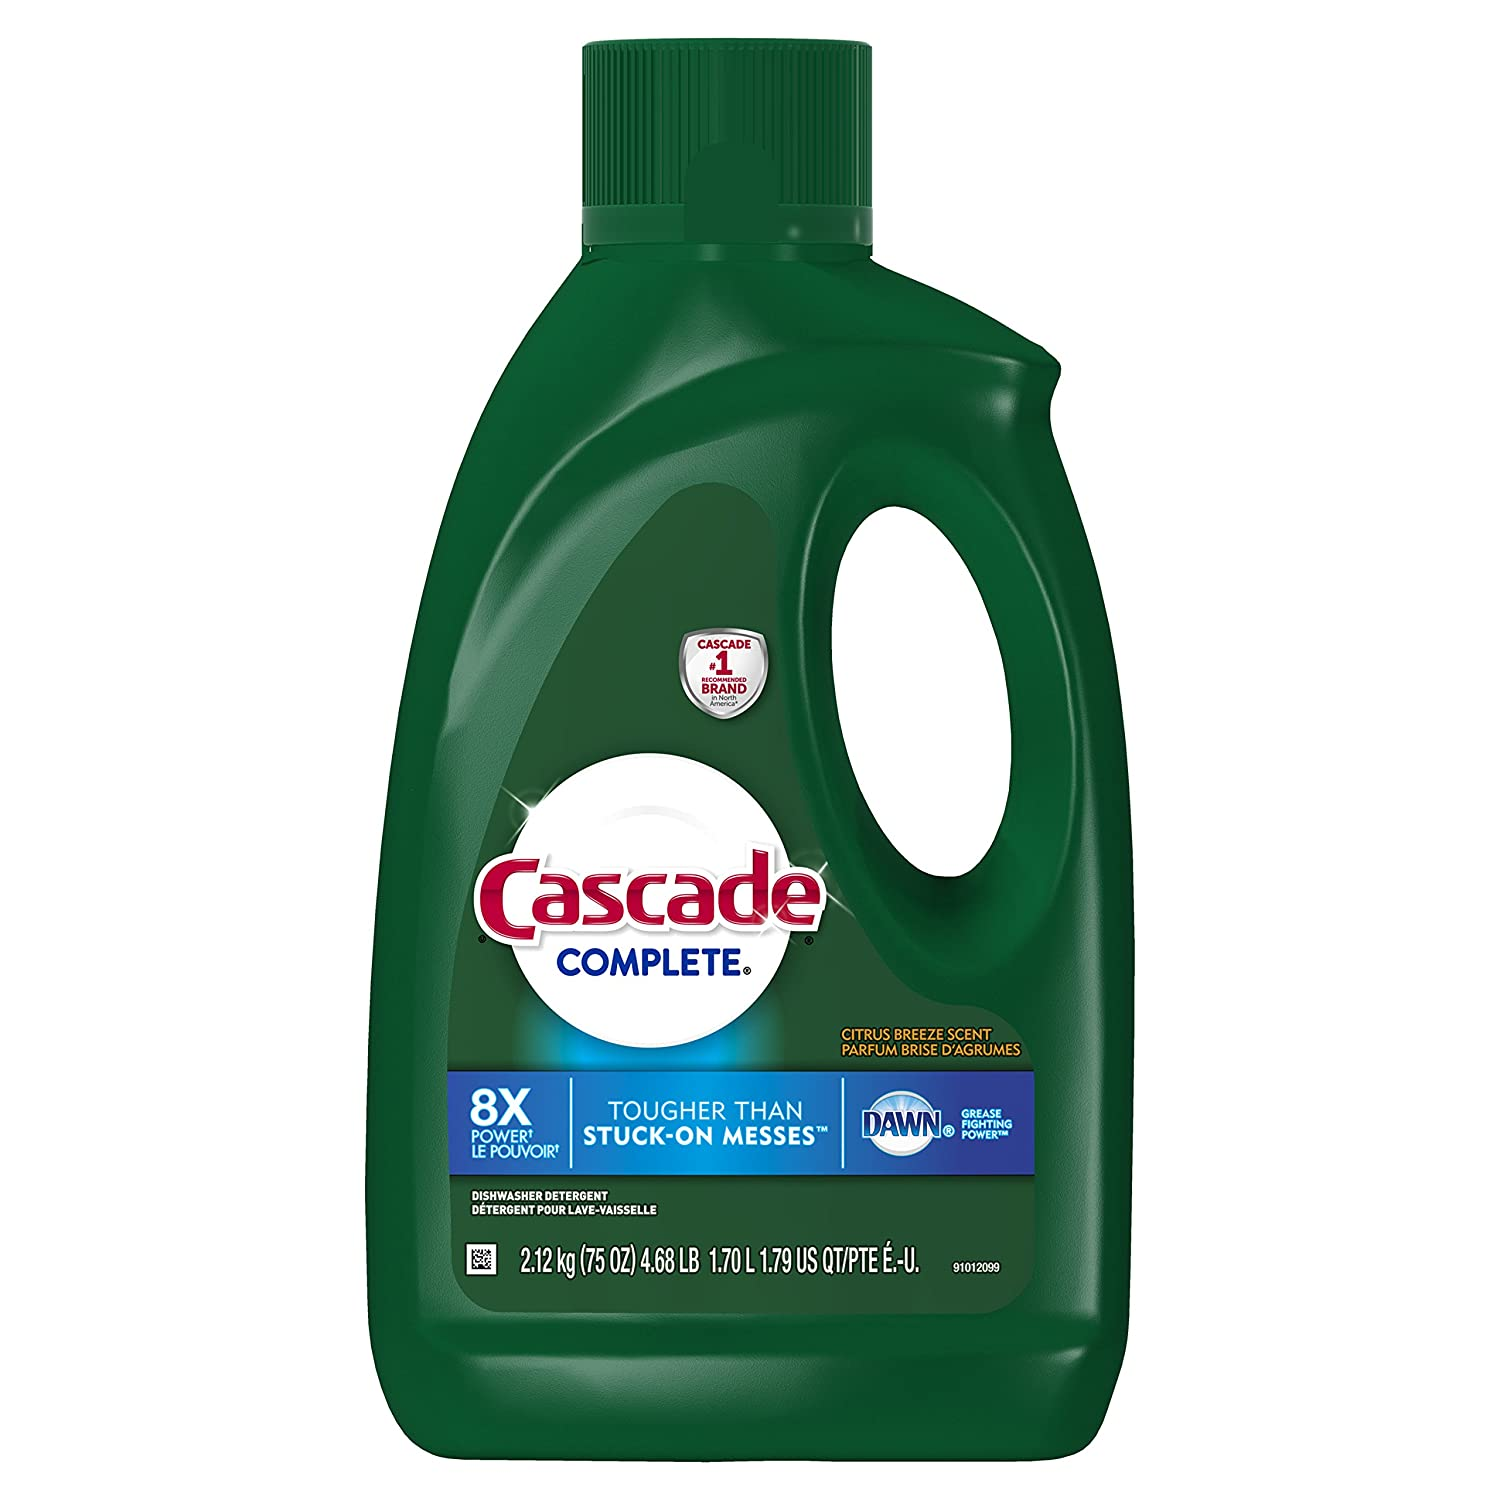 Cascade Complete Gel Dishwasher Detergent, Citrus Breeze, 75 Oz (Packaging May Vary): Prime Pantry